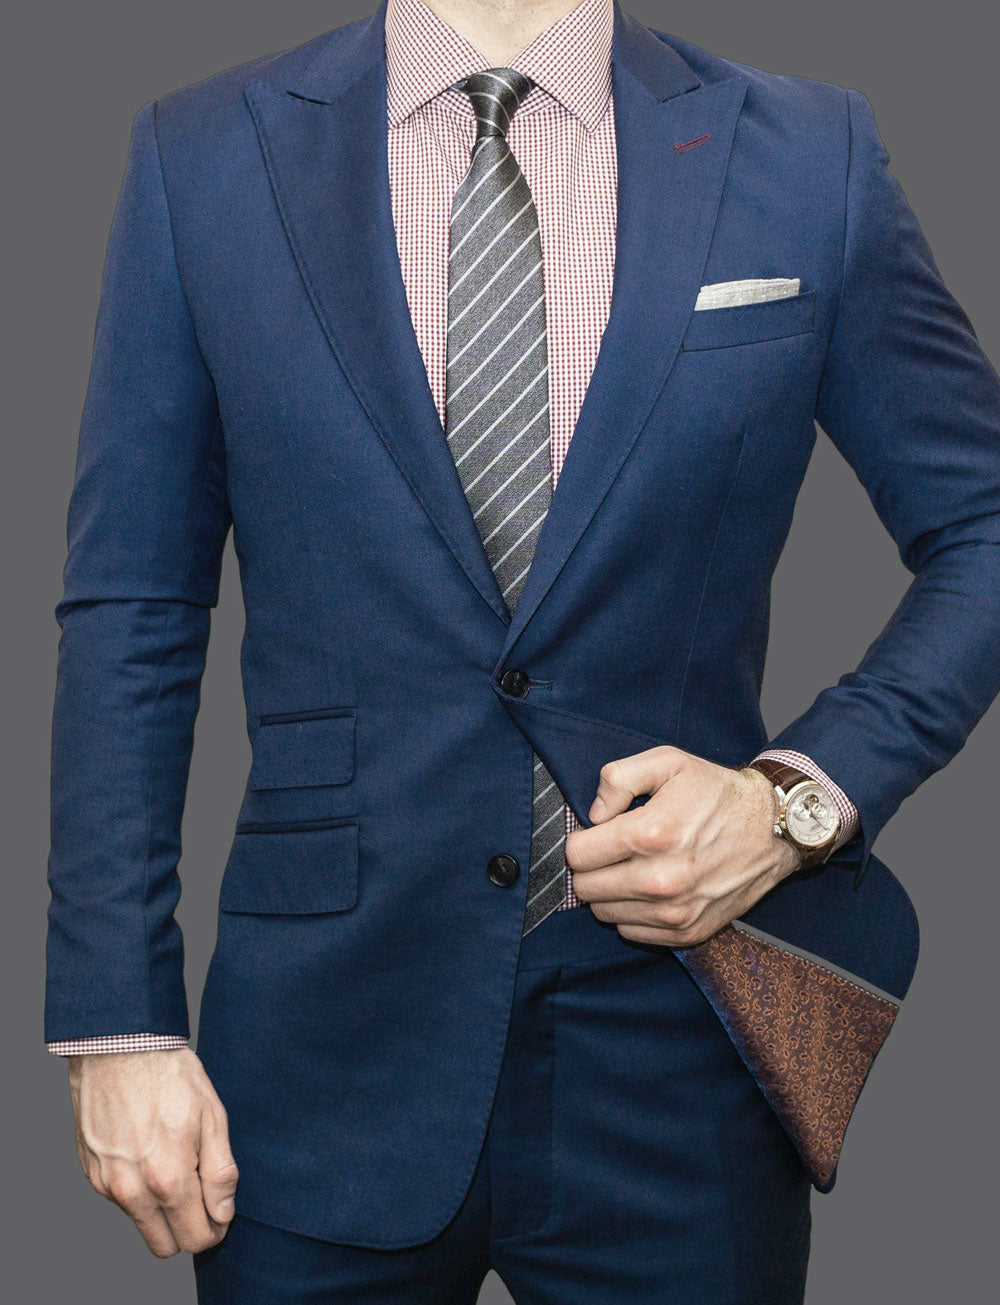 Business man in a blue suit